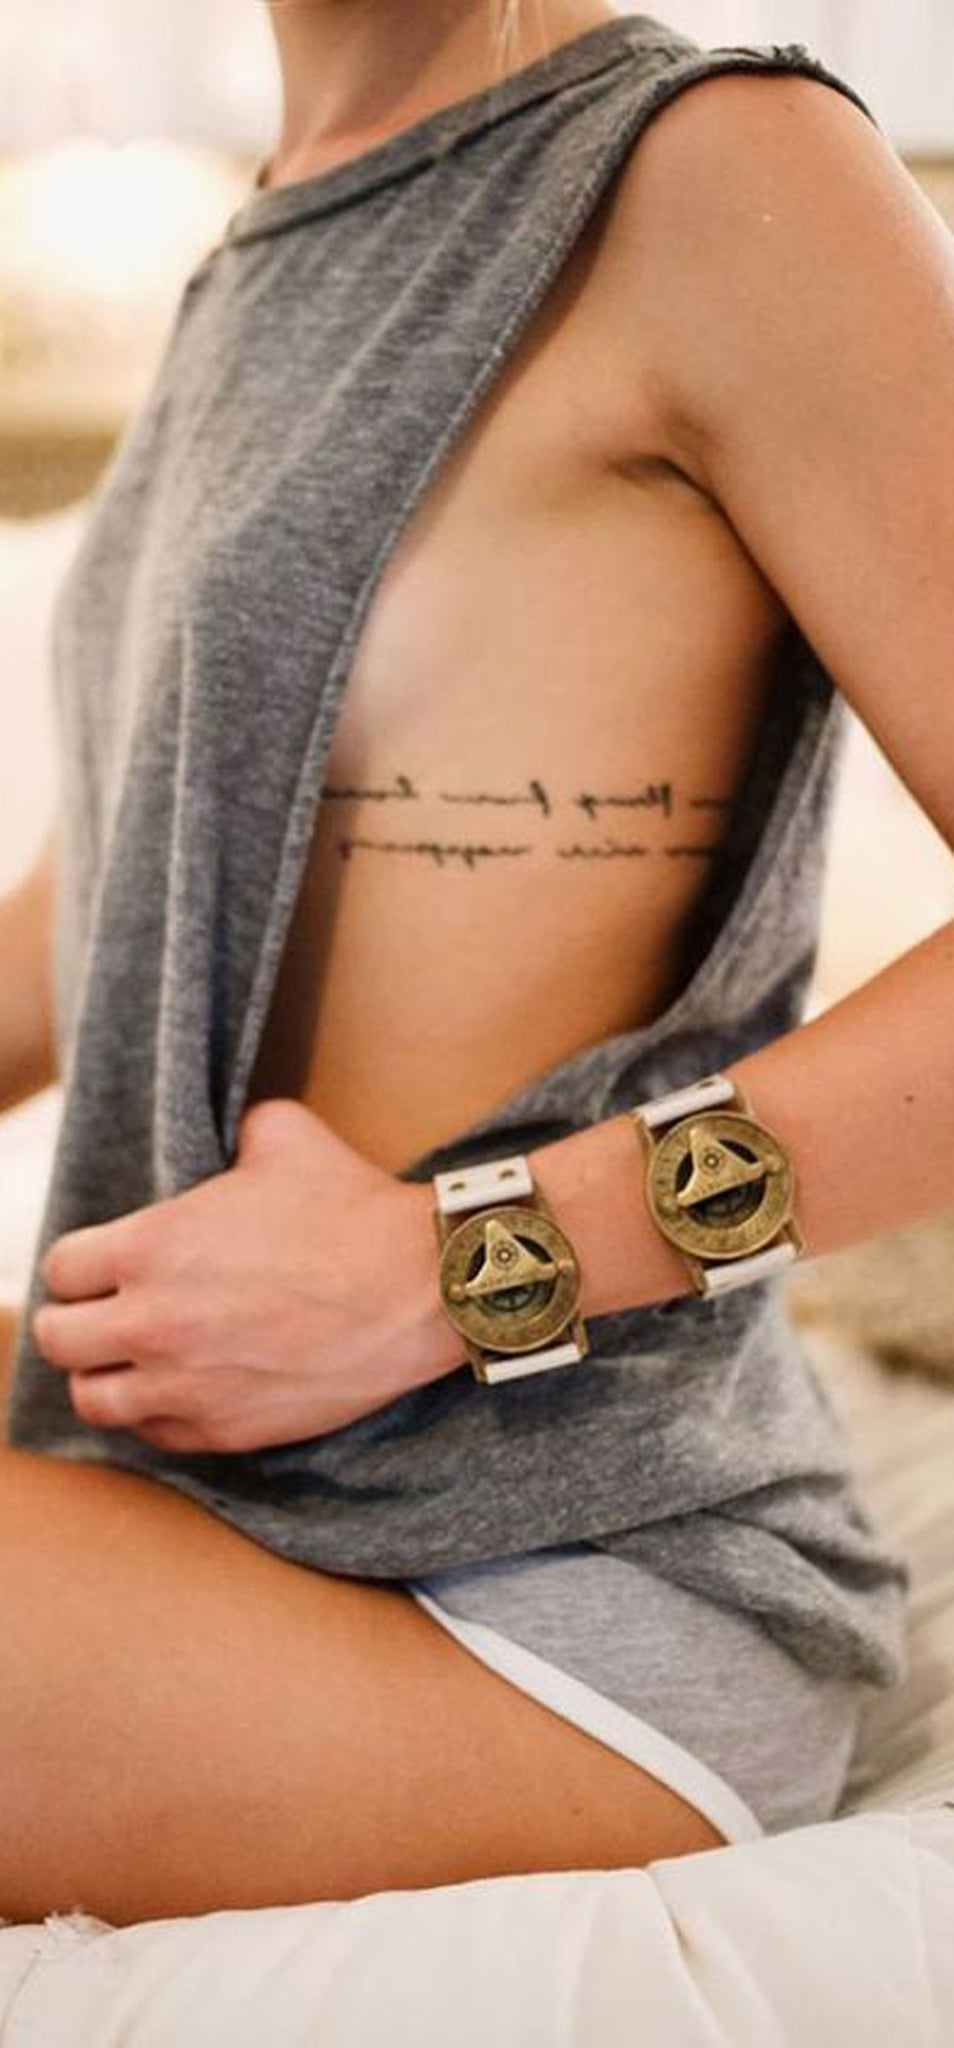 Small Script Rib Tattoo Ideas - Meaning Cursive Quote ideas de tatuajes - www.MyBodiArt.com